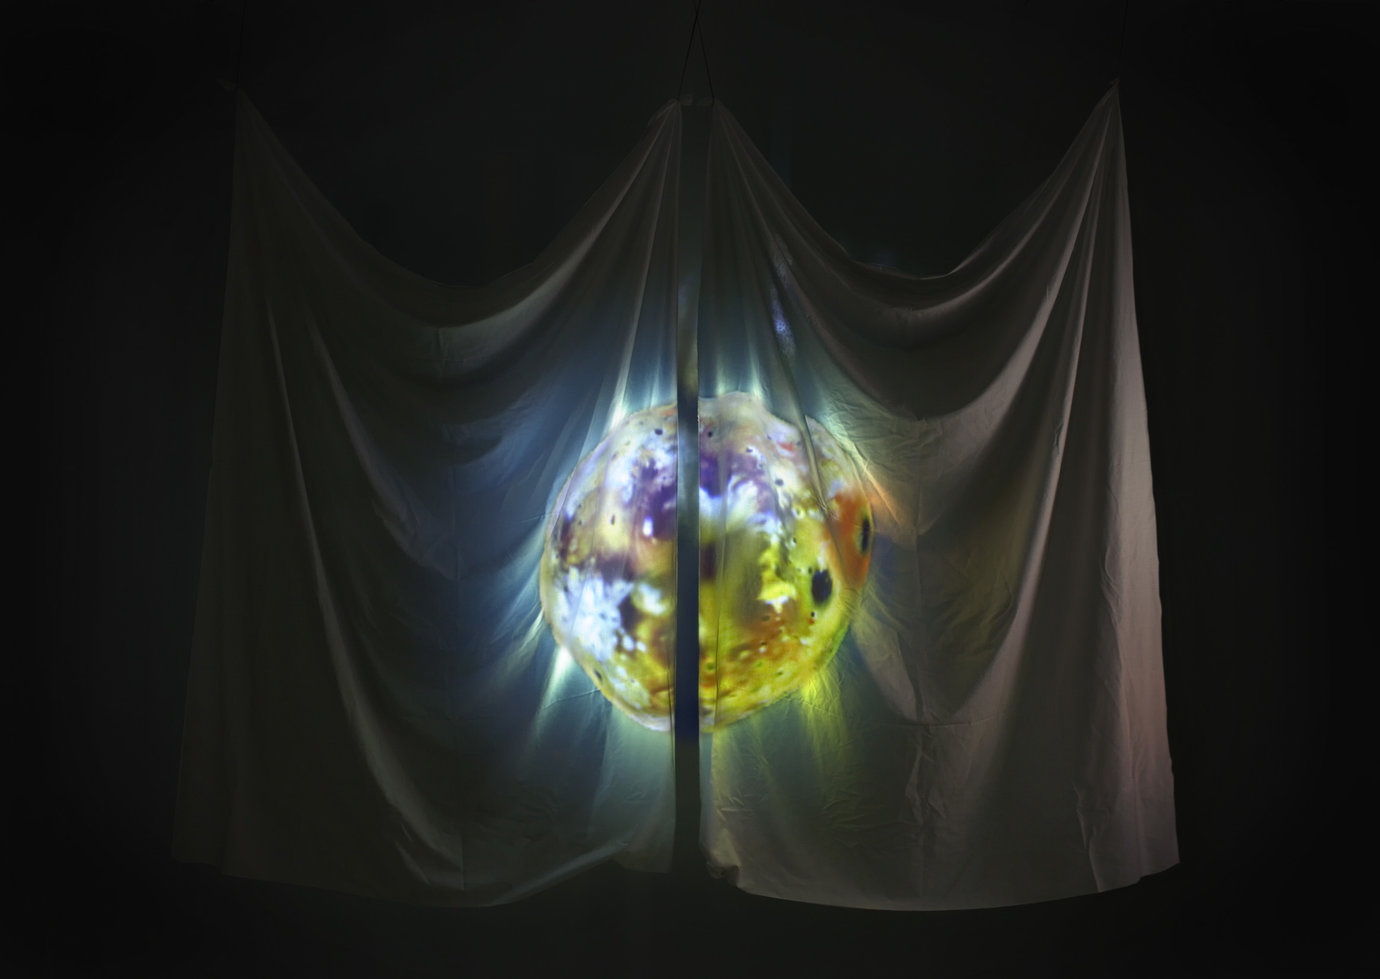 ", 2007. Cloth with looped digital video projection, installation dimensions variable; cloth approximately 11' x 8' 9"" (335.3 cm x 266.7 cm), viewable from both sides."